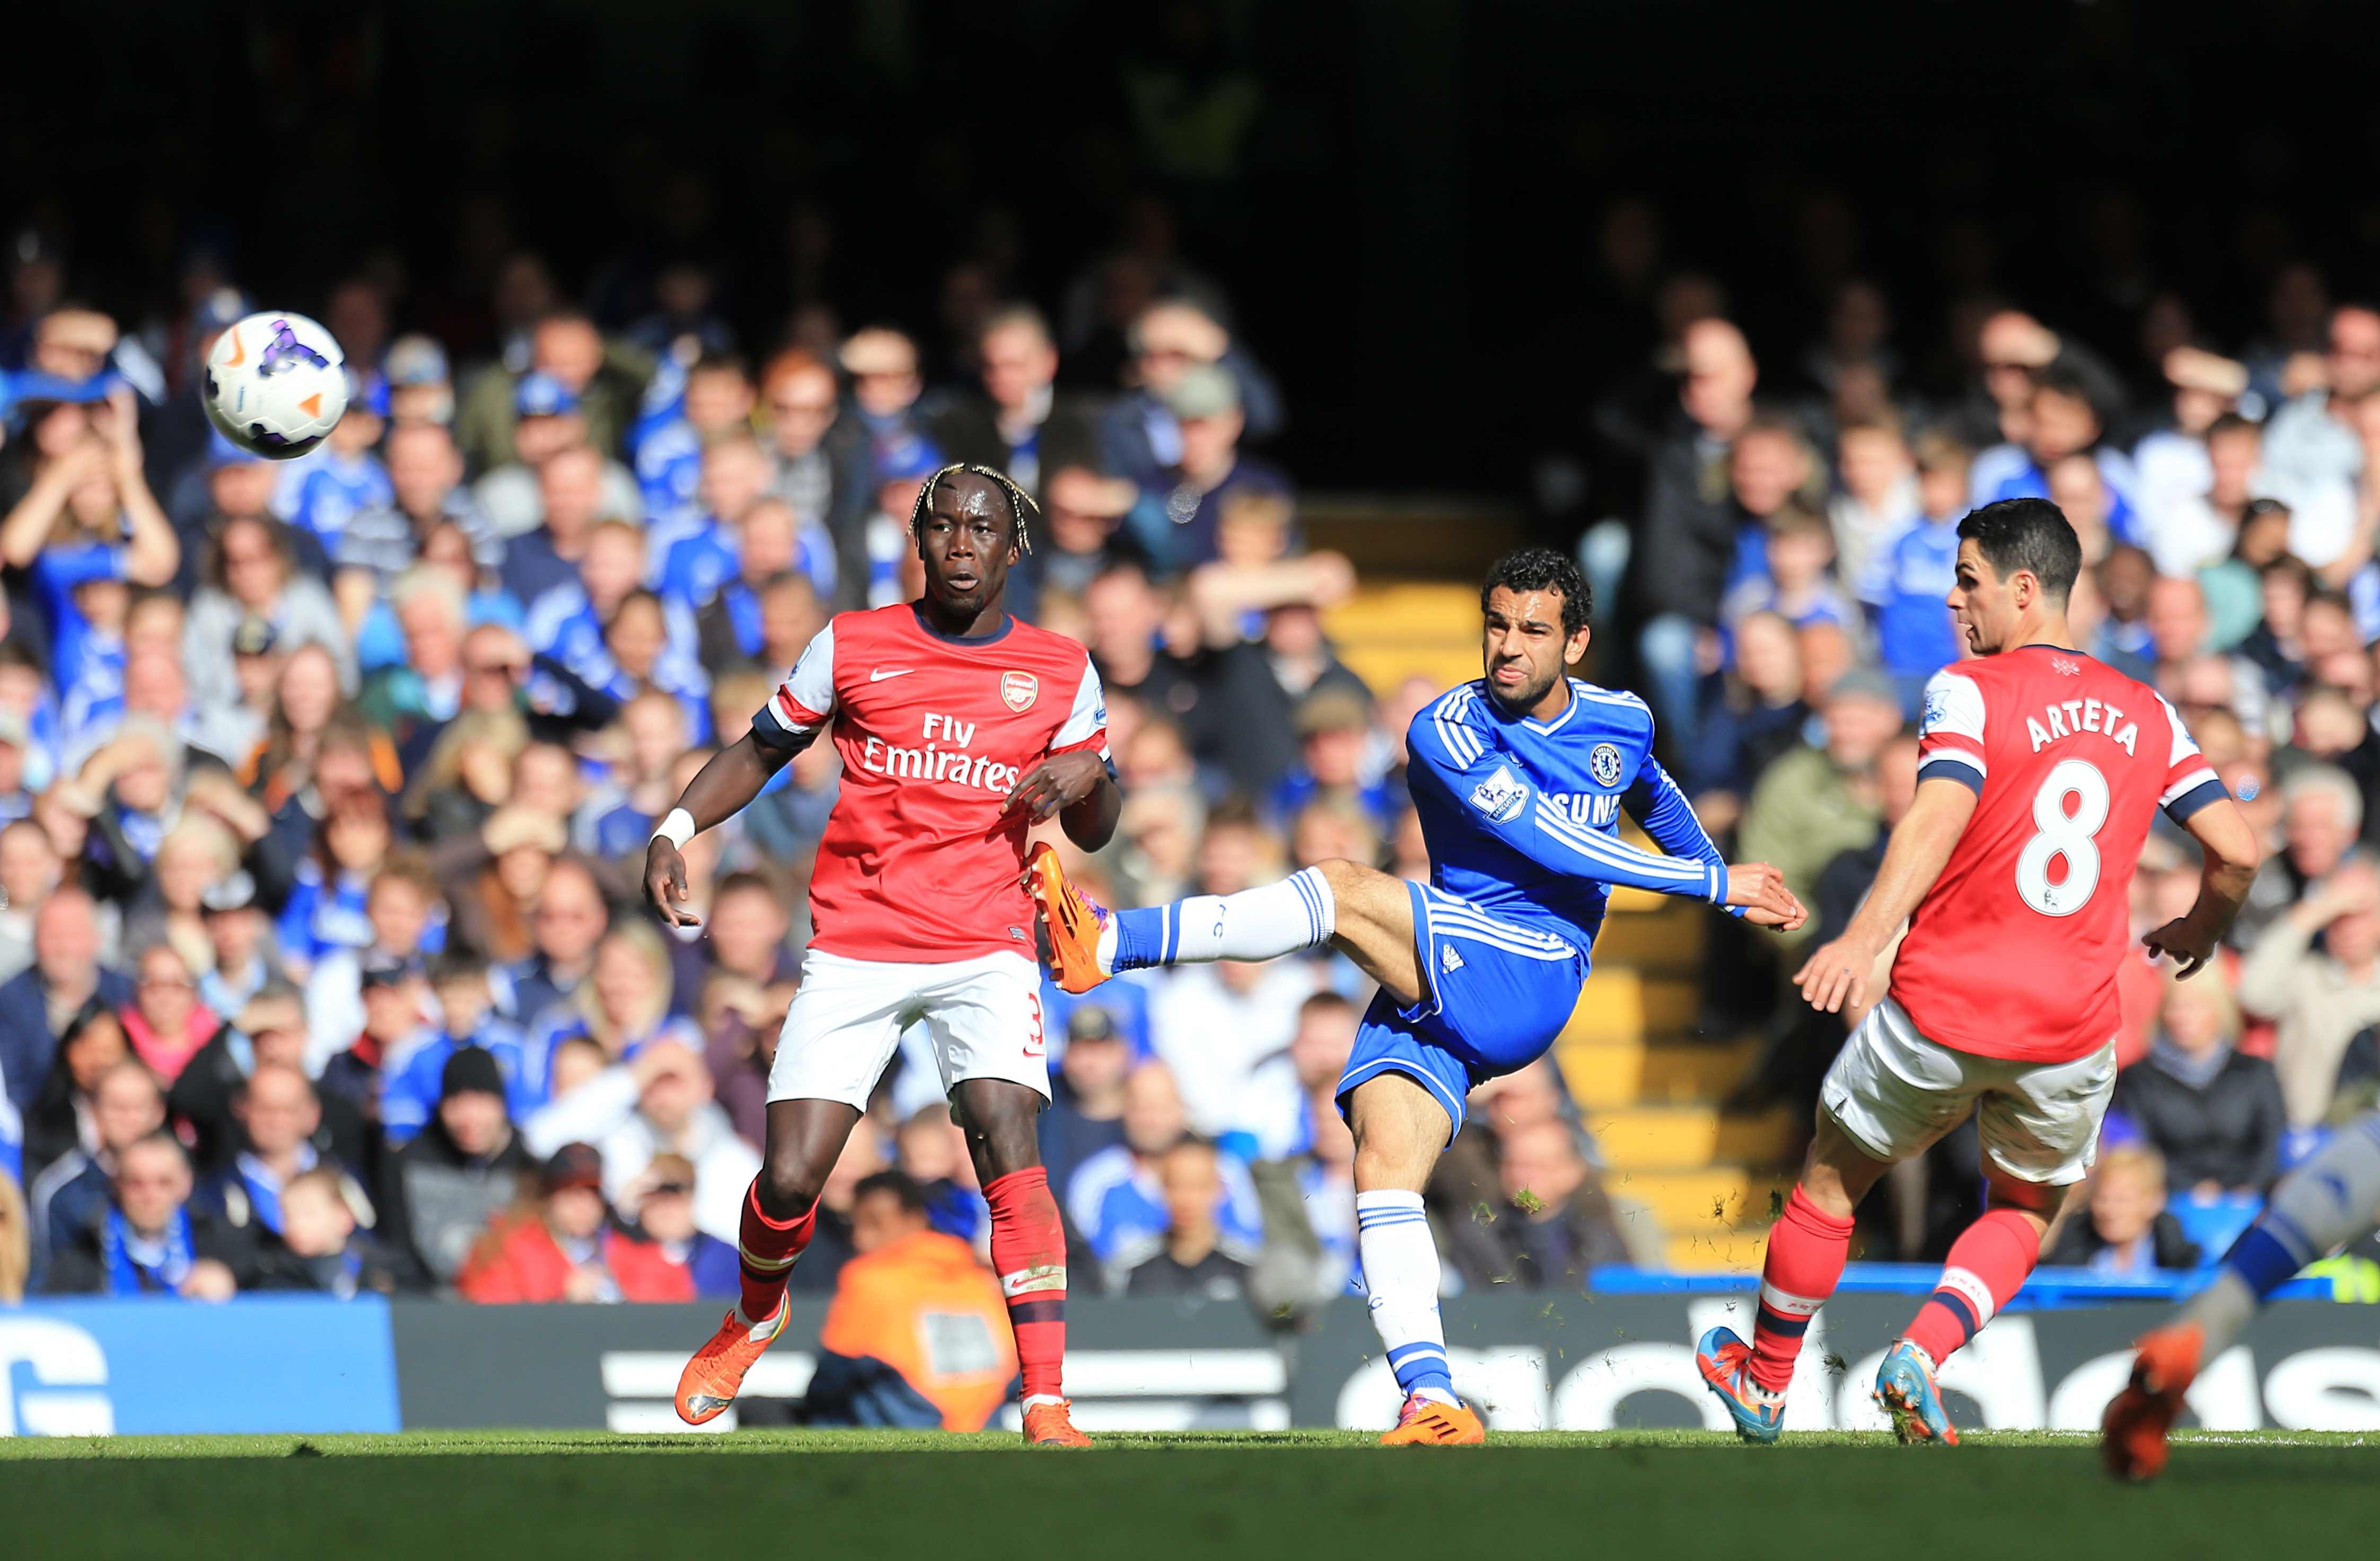 Mohamed Salah scored Chelsea's last goal in a 6-0 thrashing of Arsenal in what was Wenger's 1000th game in charge.